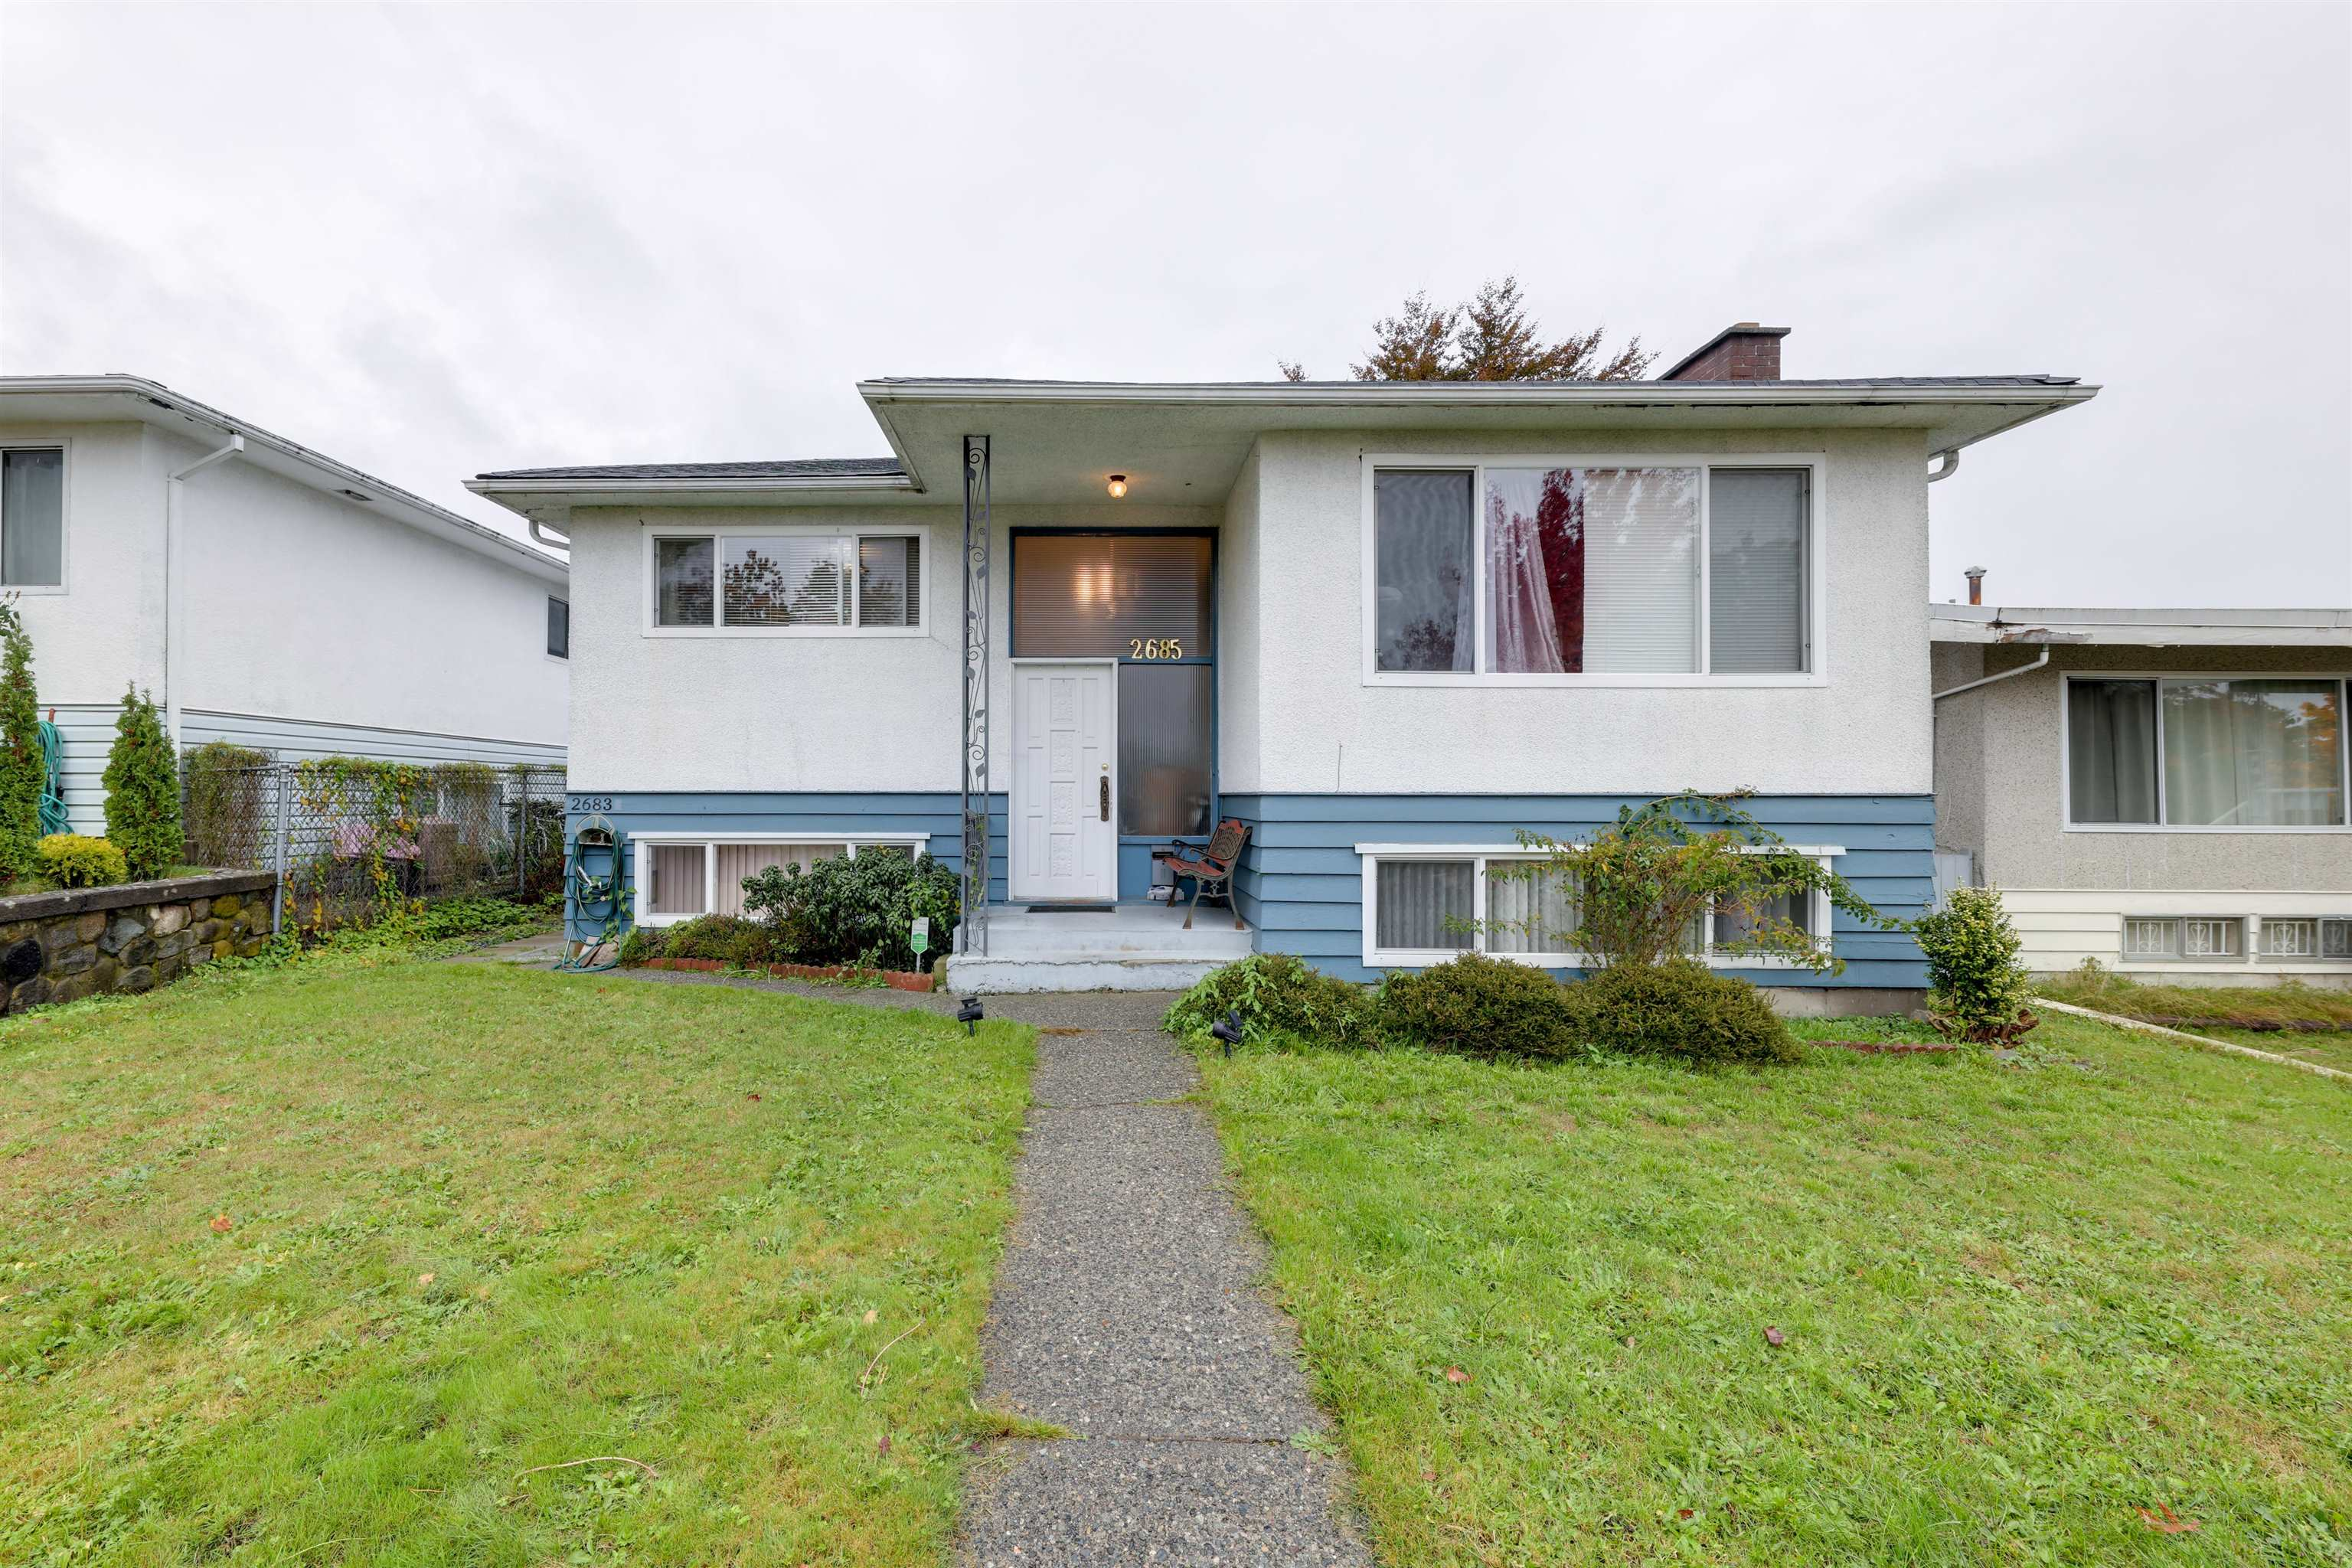 2685 E 57TH AVENUE - Fraserview VE House/Single Family for sale, 5 Bedrooms (R2626598) - #1